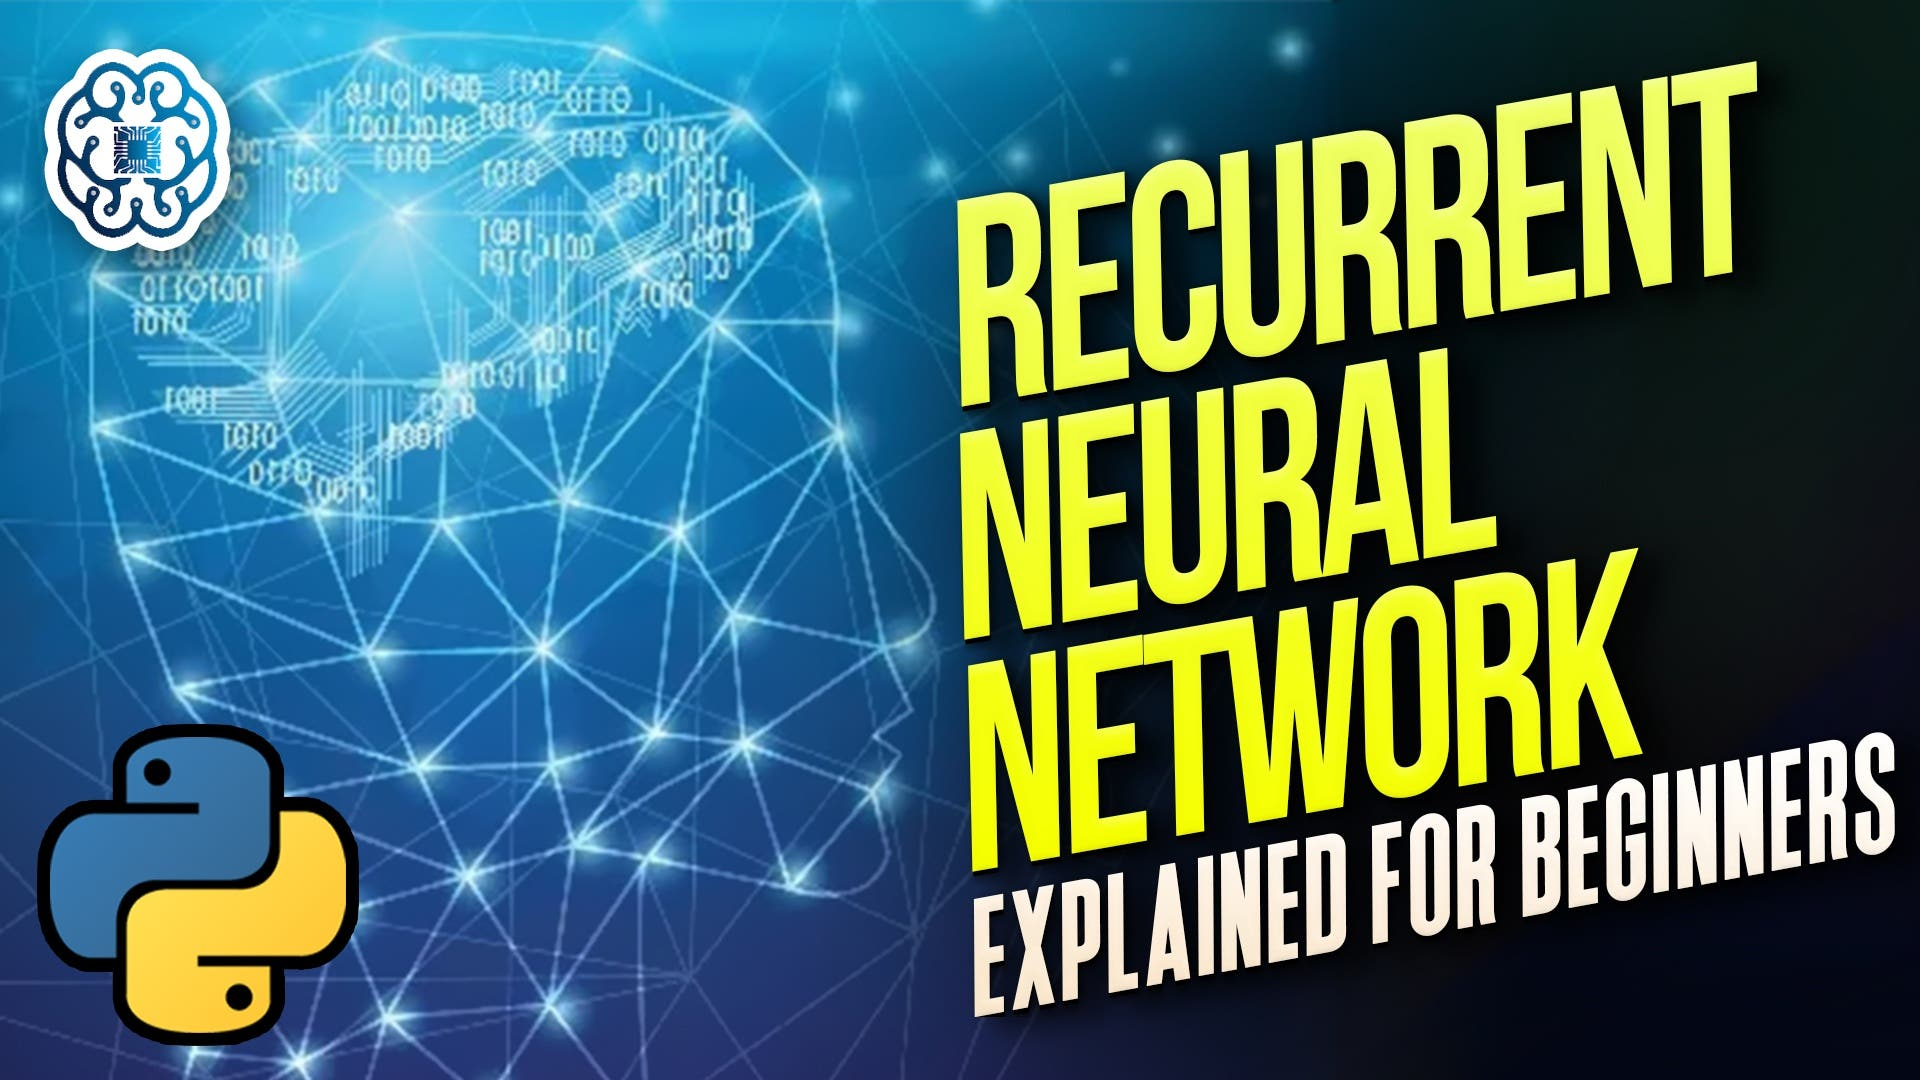 Recurrent Neural Network Explained for Beginners